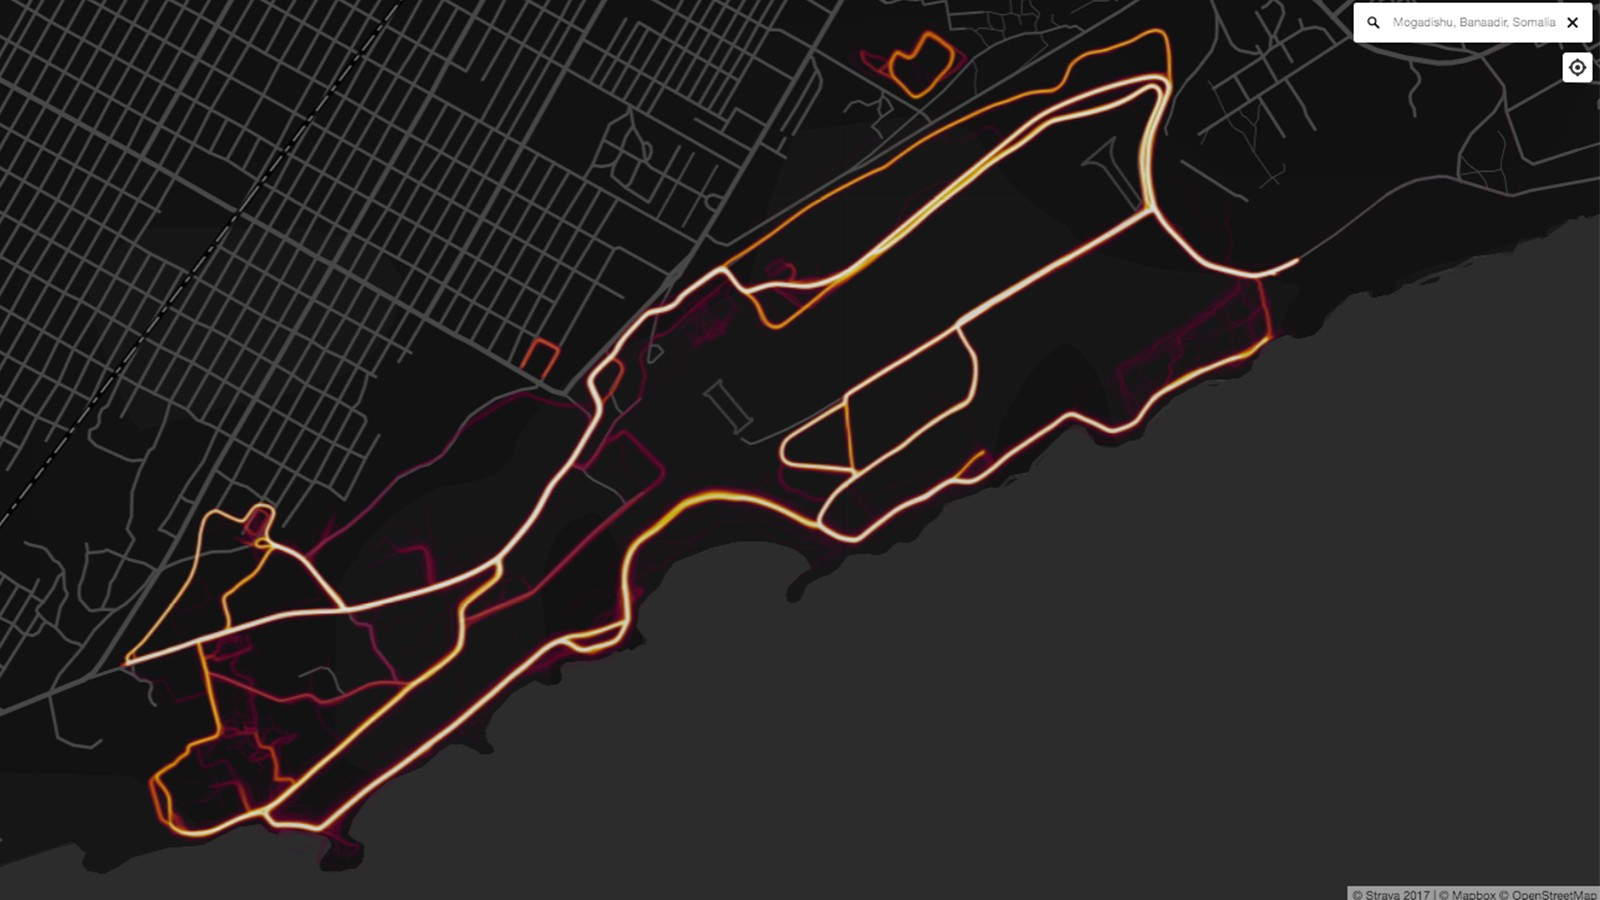 Strava's Heatmap has the potential to reveal sensitive information, such as the location and habits of U.S. and U.N. personel